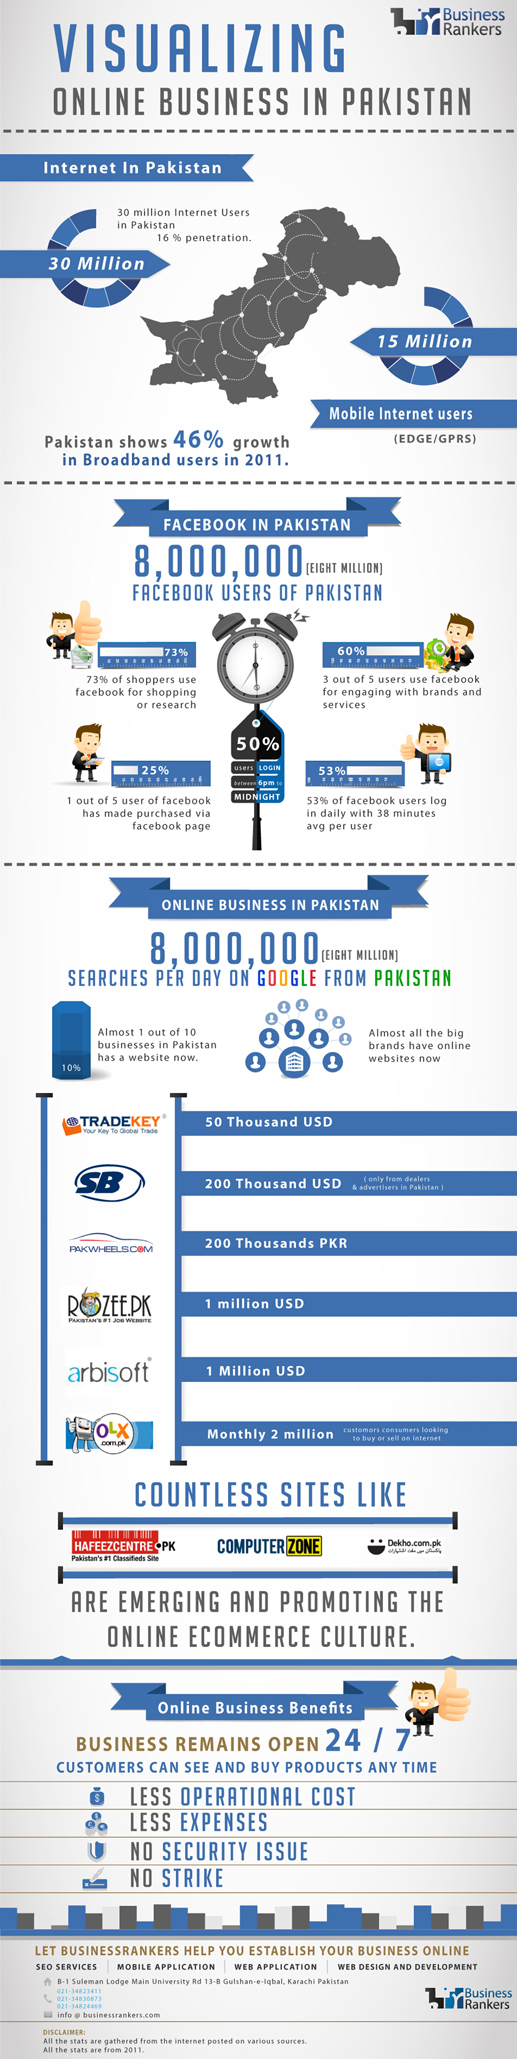 Visualizing online business in Pakistan #infographic